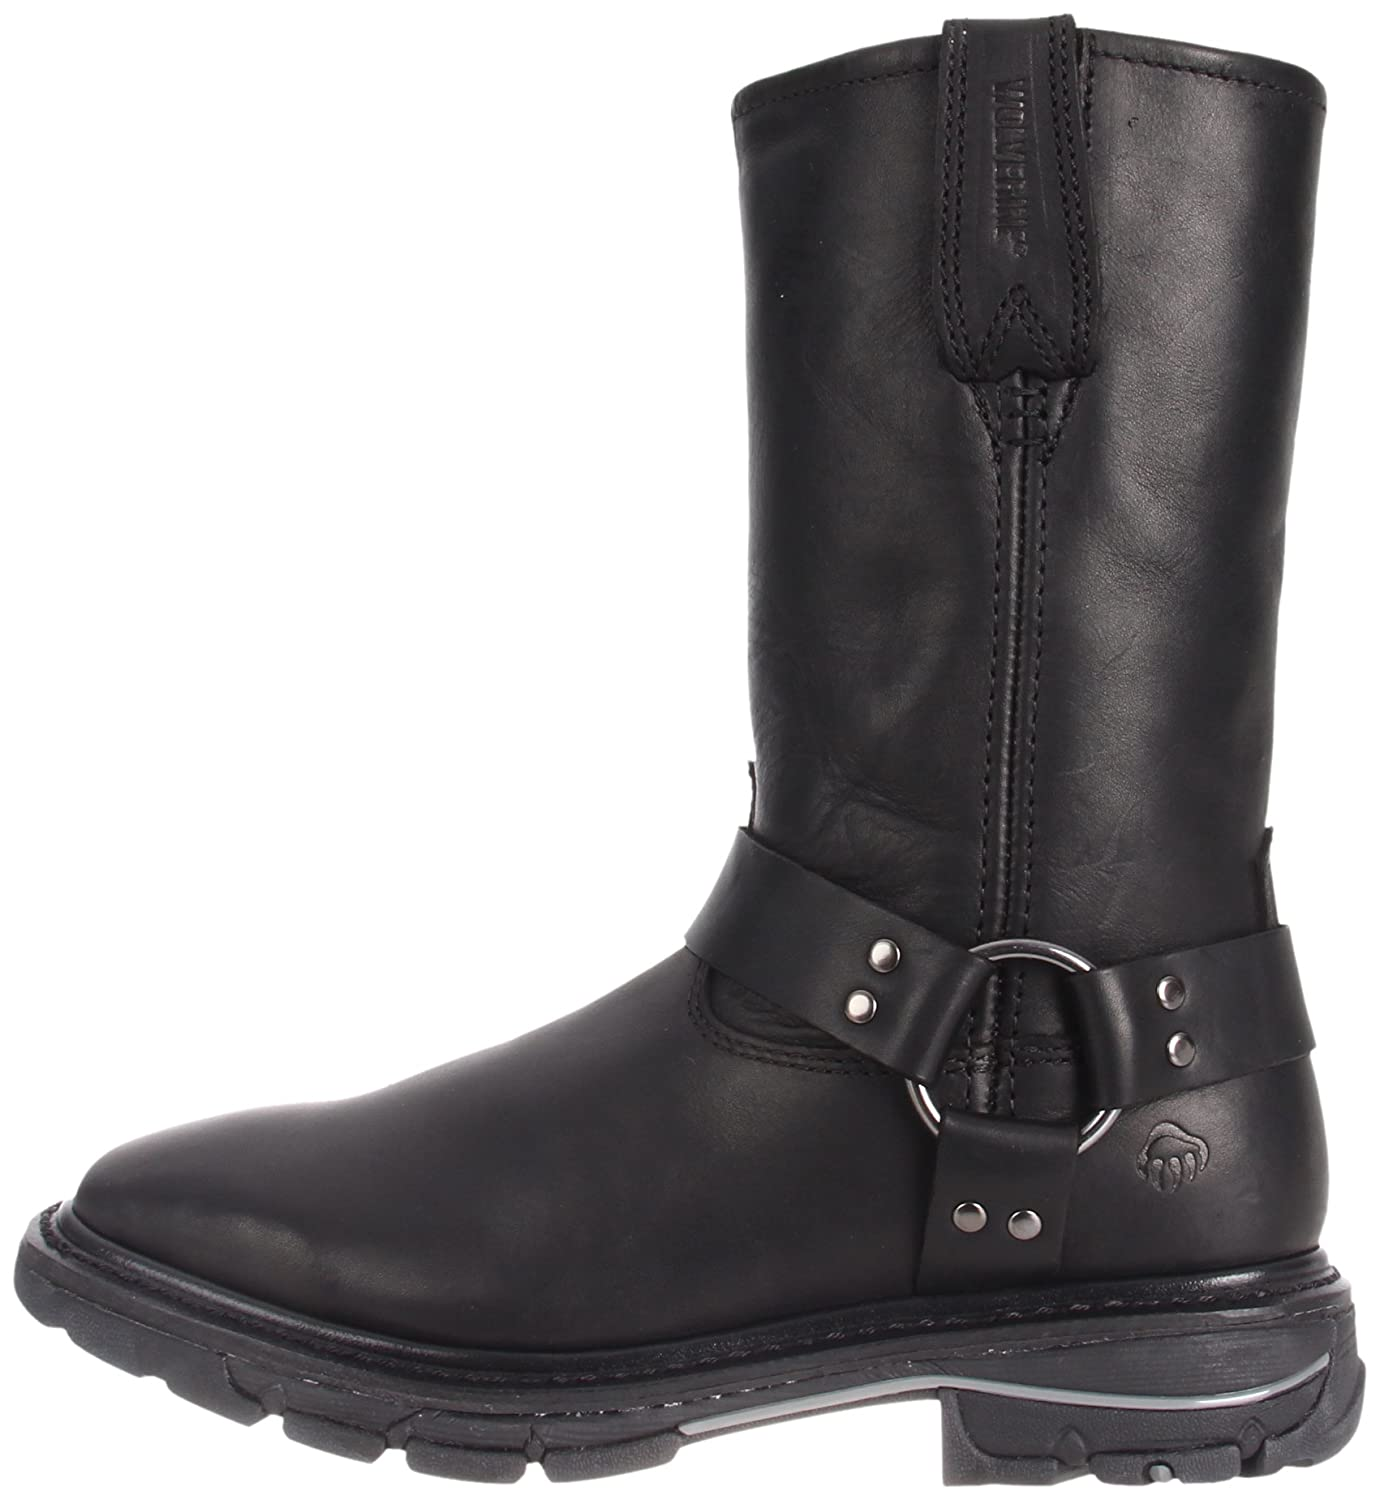 74cf23255a6 Amazon.com | Wolverine Men's Javelina Horsepower Harness Boot ...